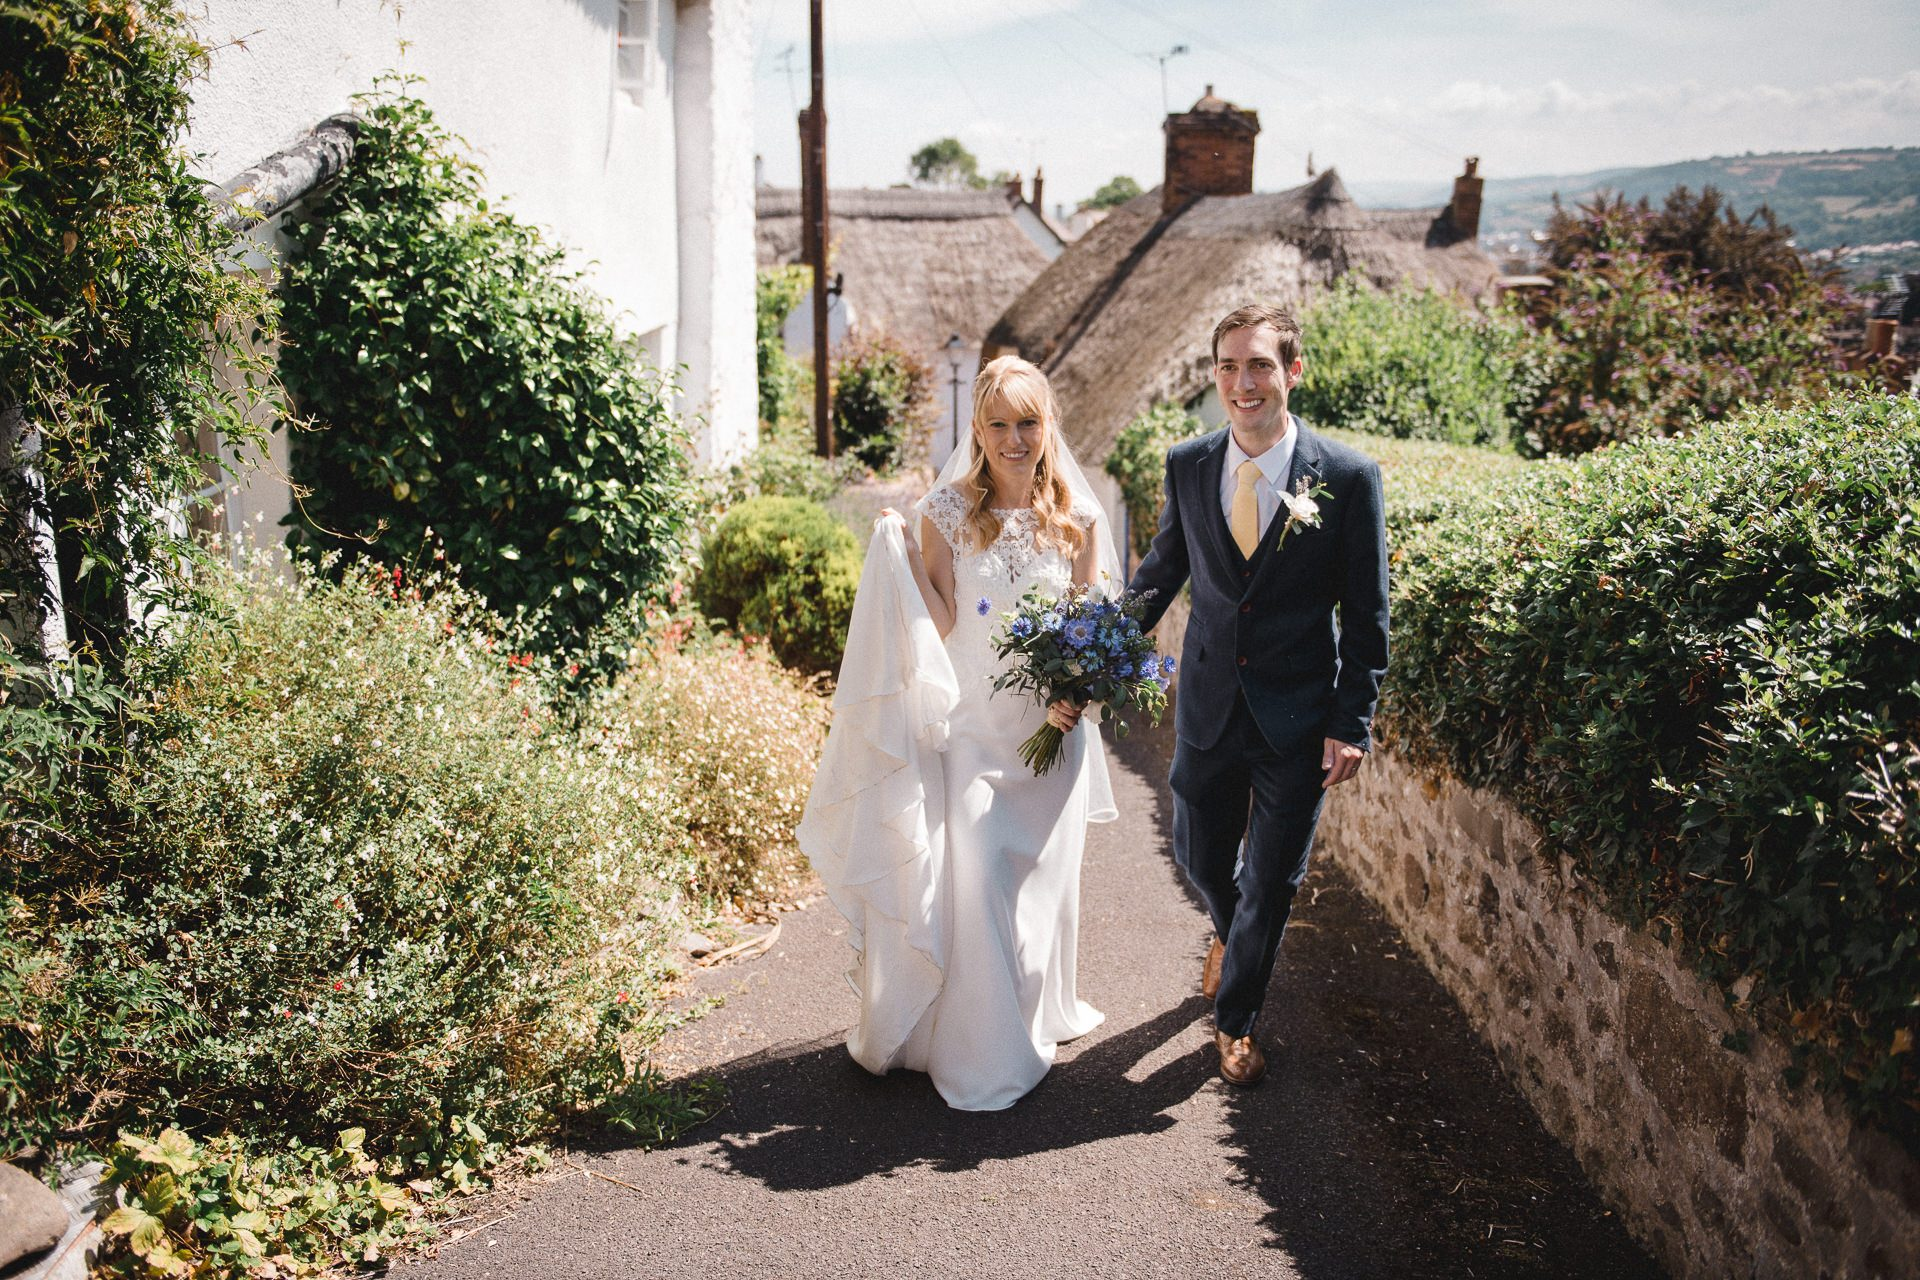 0004-DEVON-SOMERSET-WEDDING-PHOTOGRAPHER-0034-BEST-OF-2019-LOUISE-MAY-DEVON-SOMERSET-WEDDING-PHOTOGRAPHY-LMP_1521